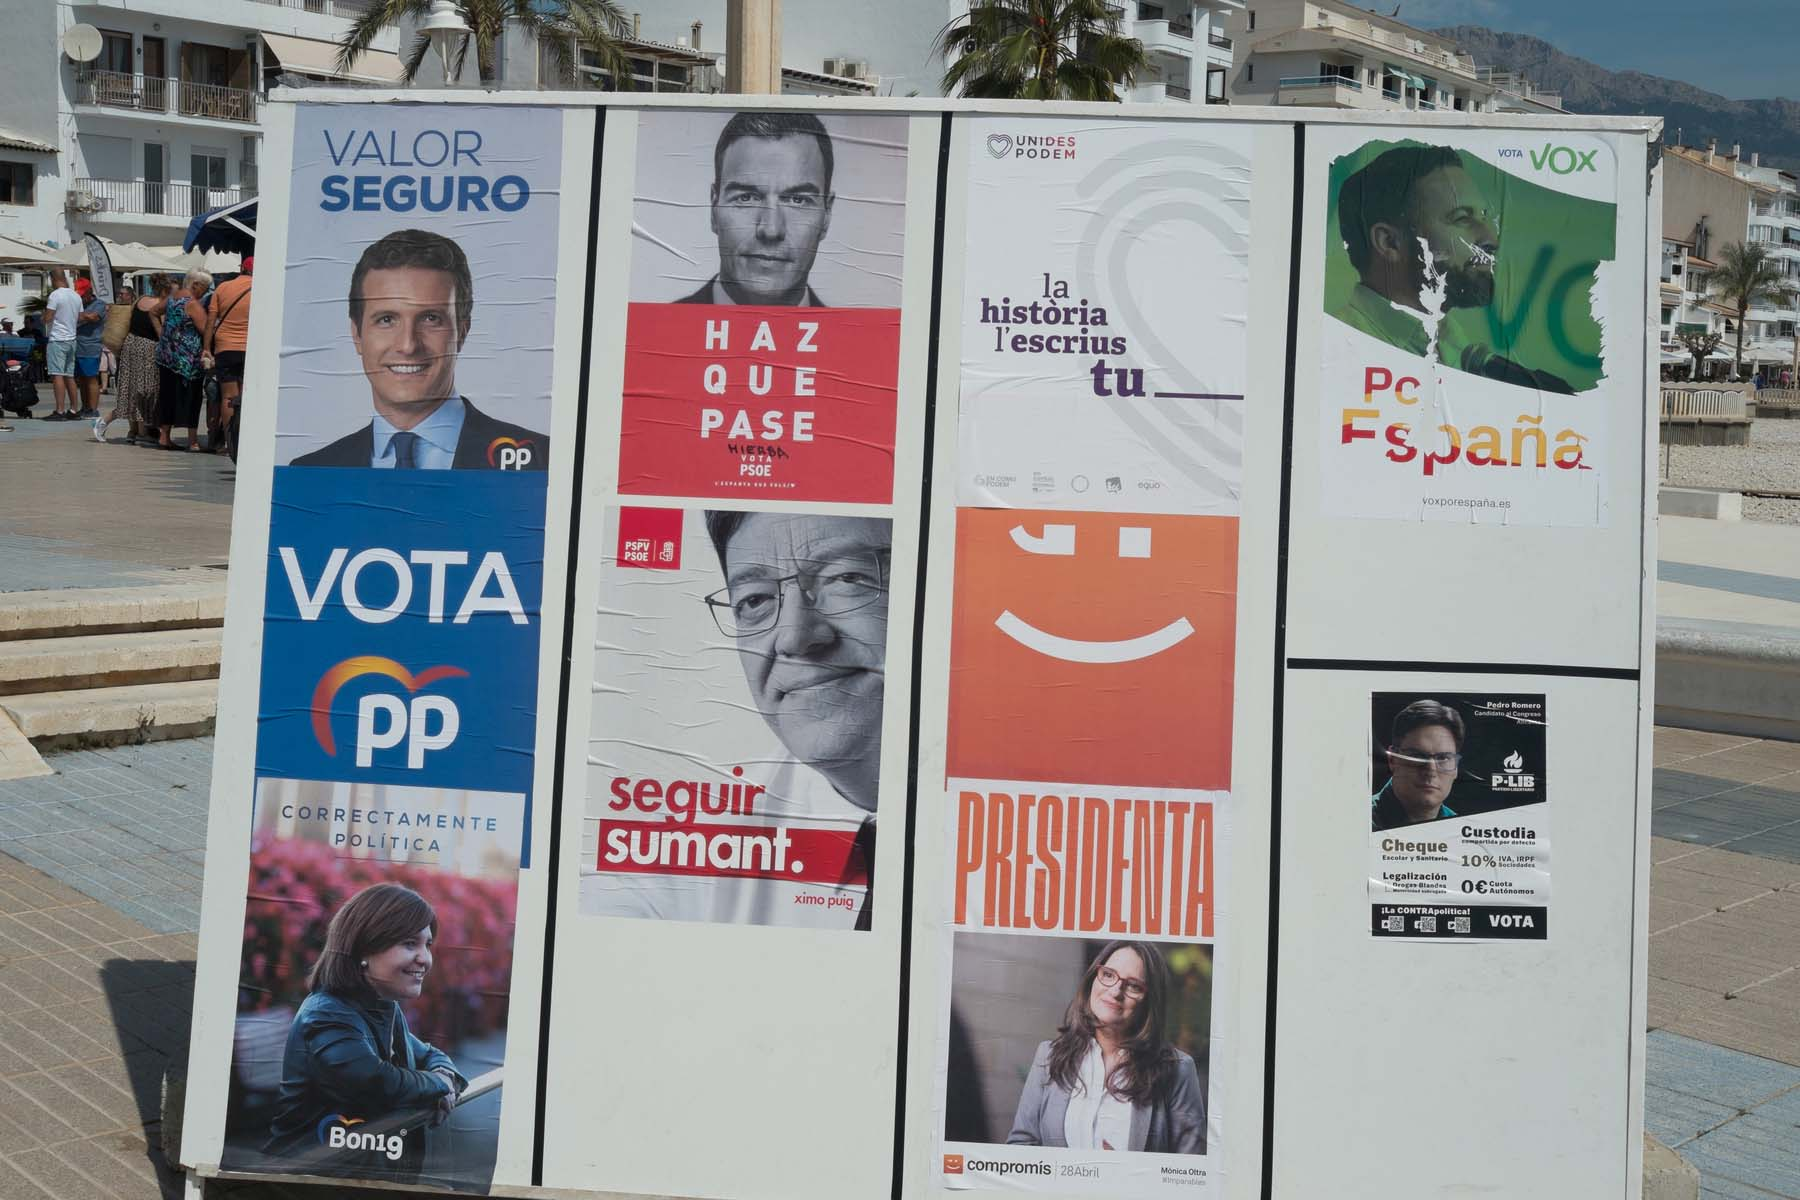 elections in Spain